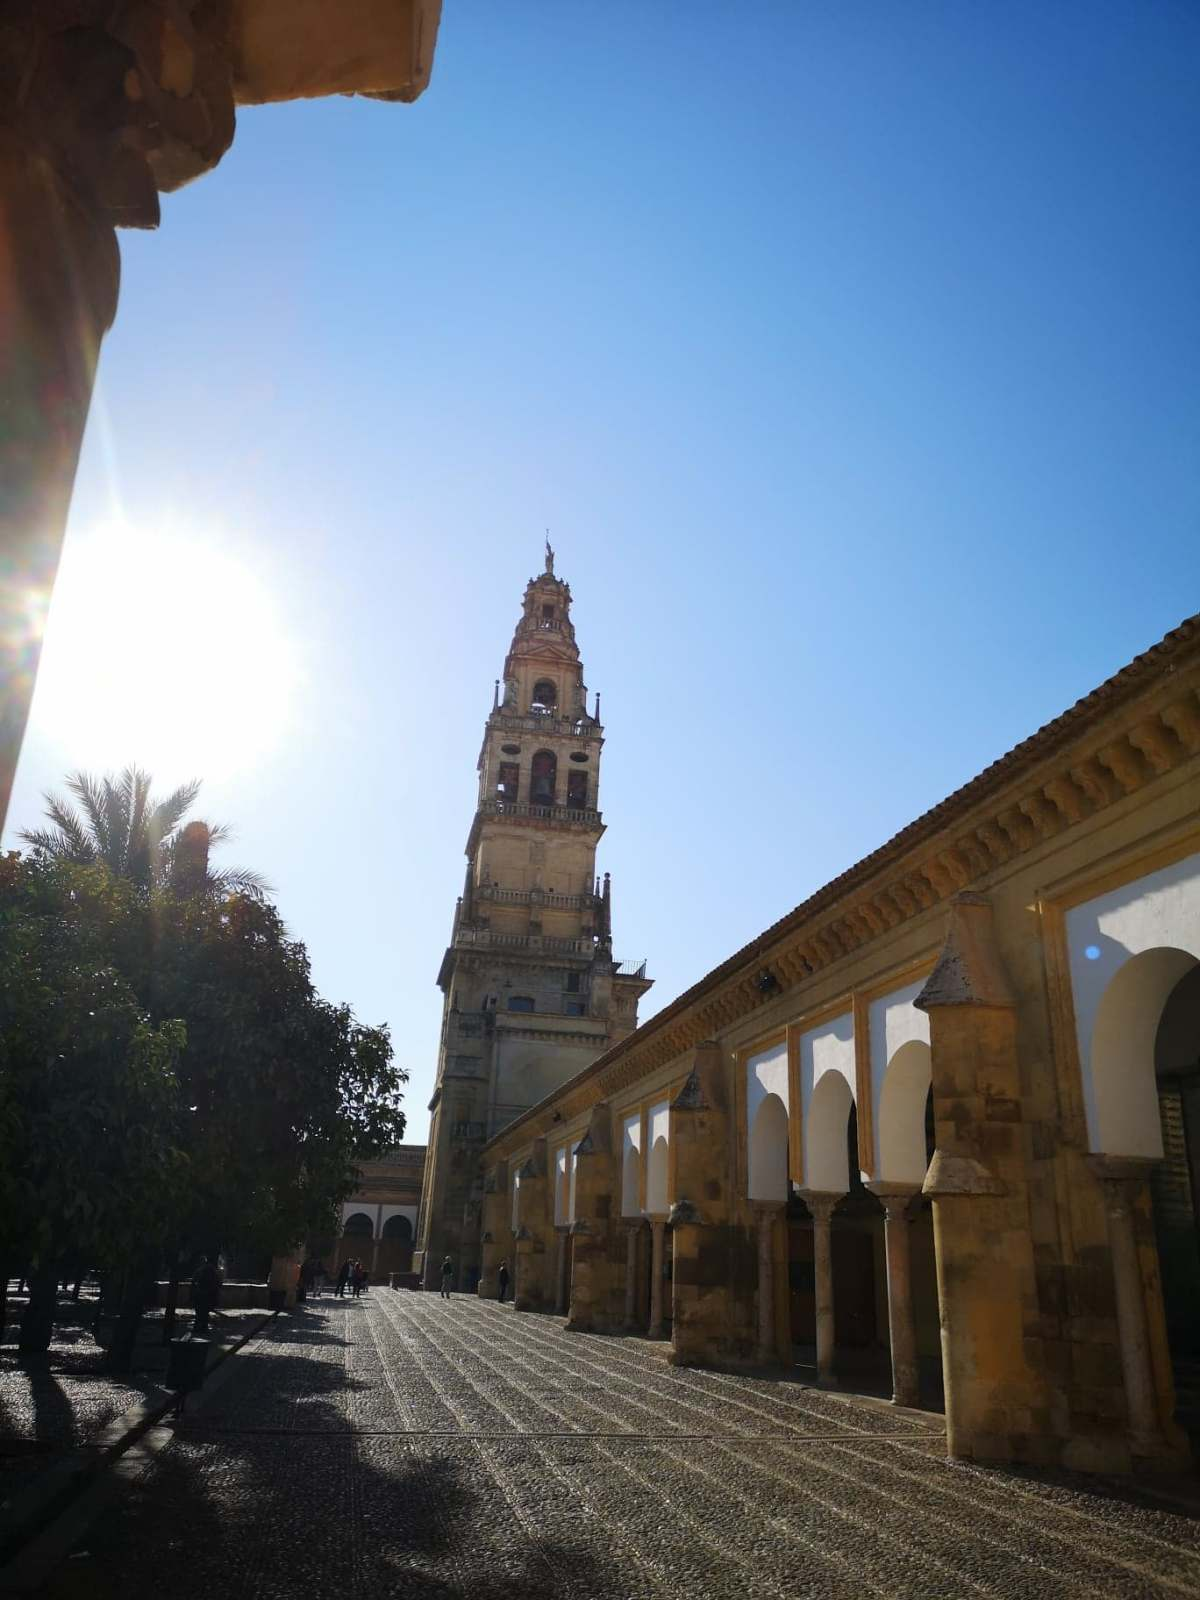 Thursday 14th Feb – La Rambla to Cordoba